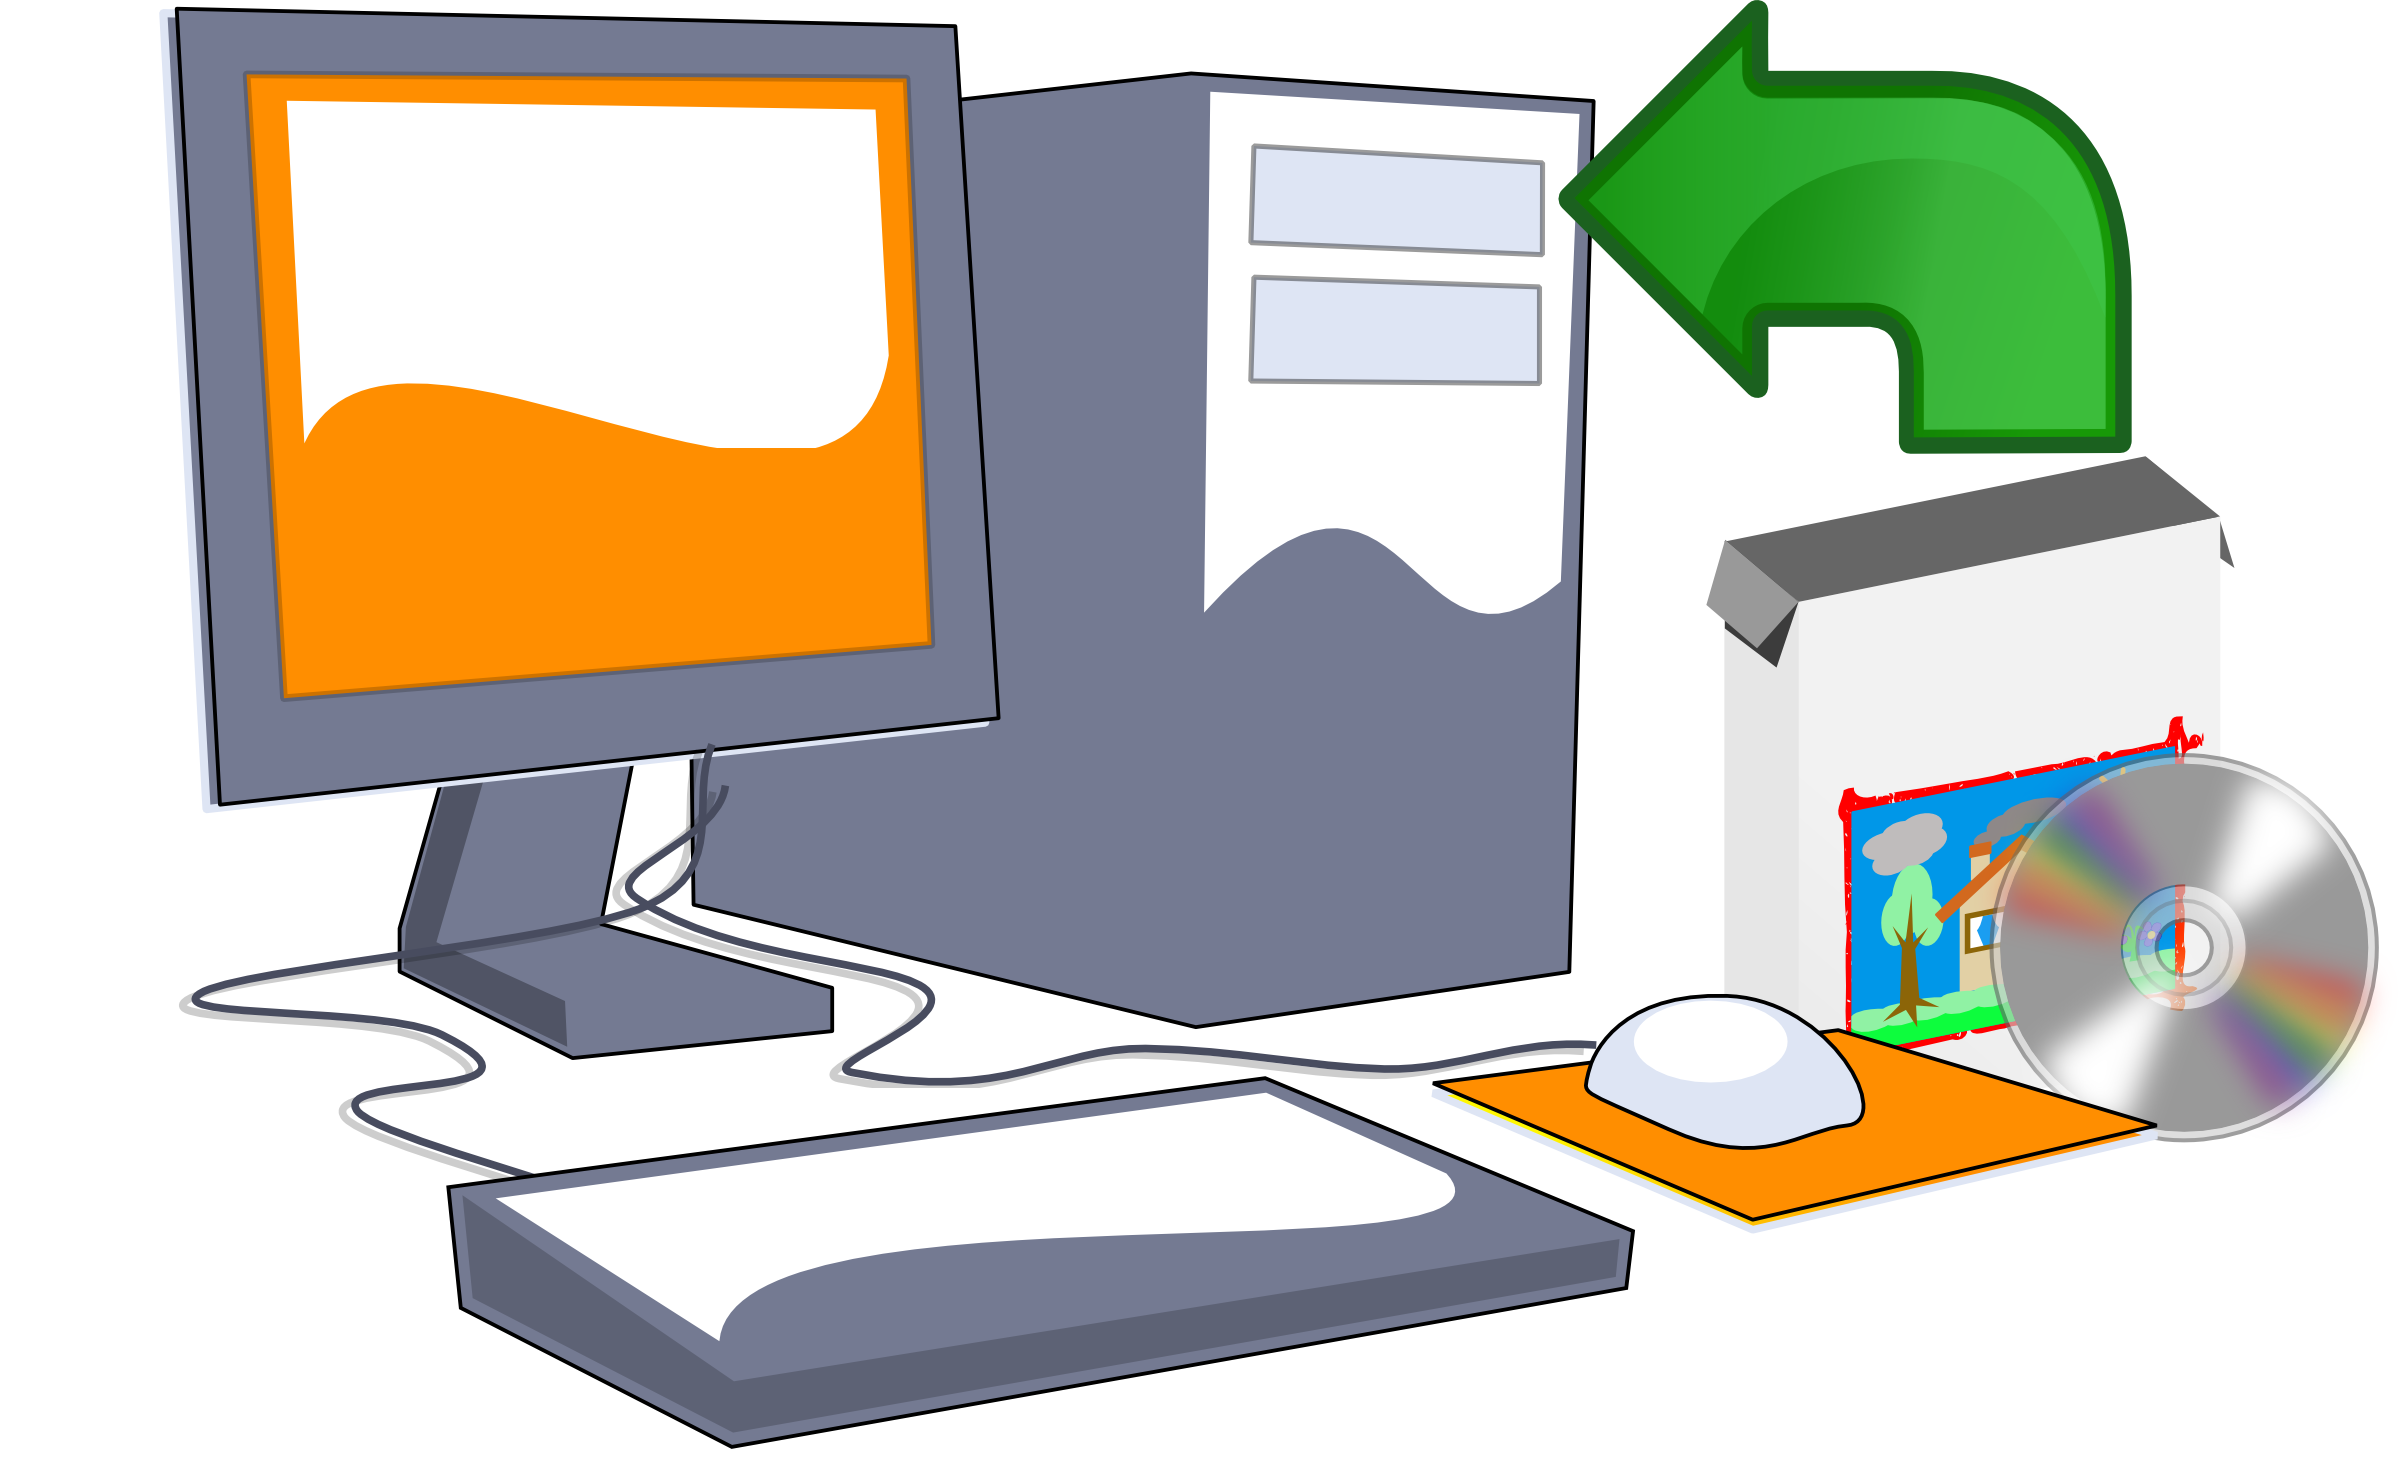 Software License Clipart-Software License Clipart-5